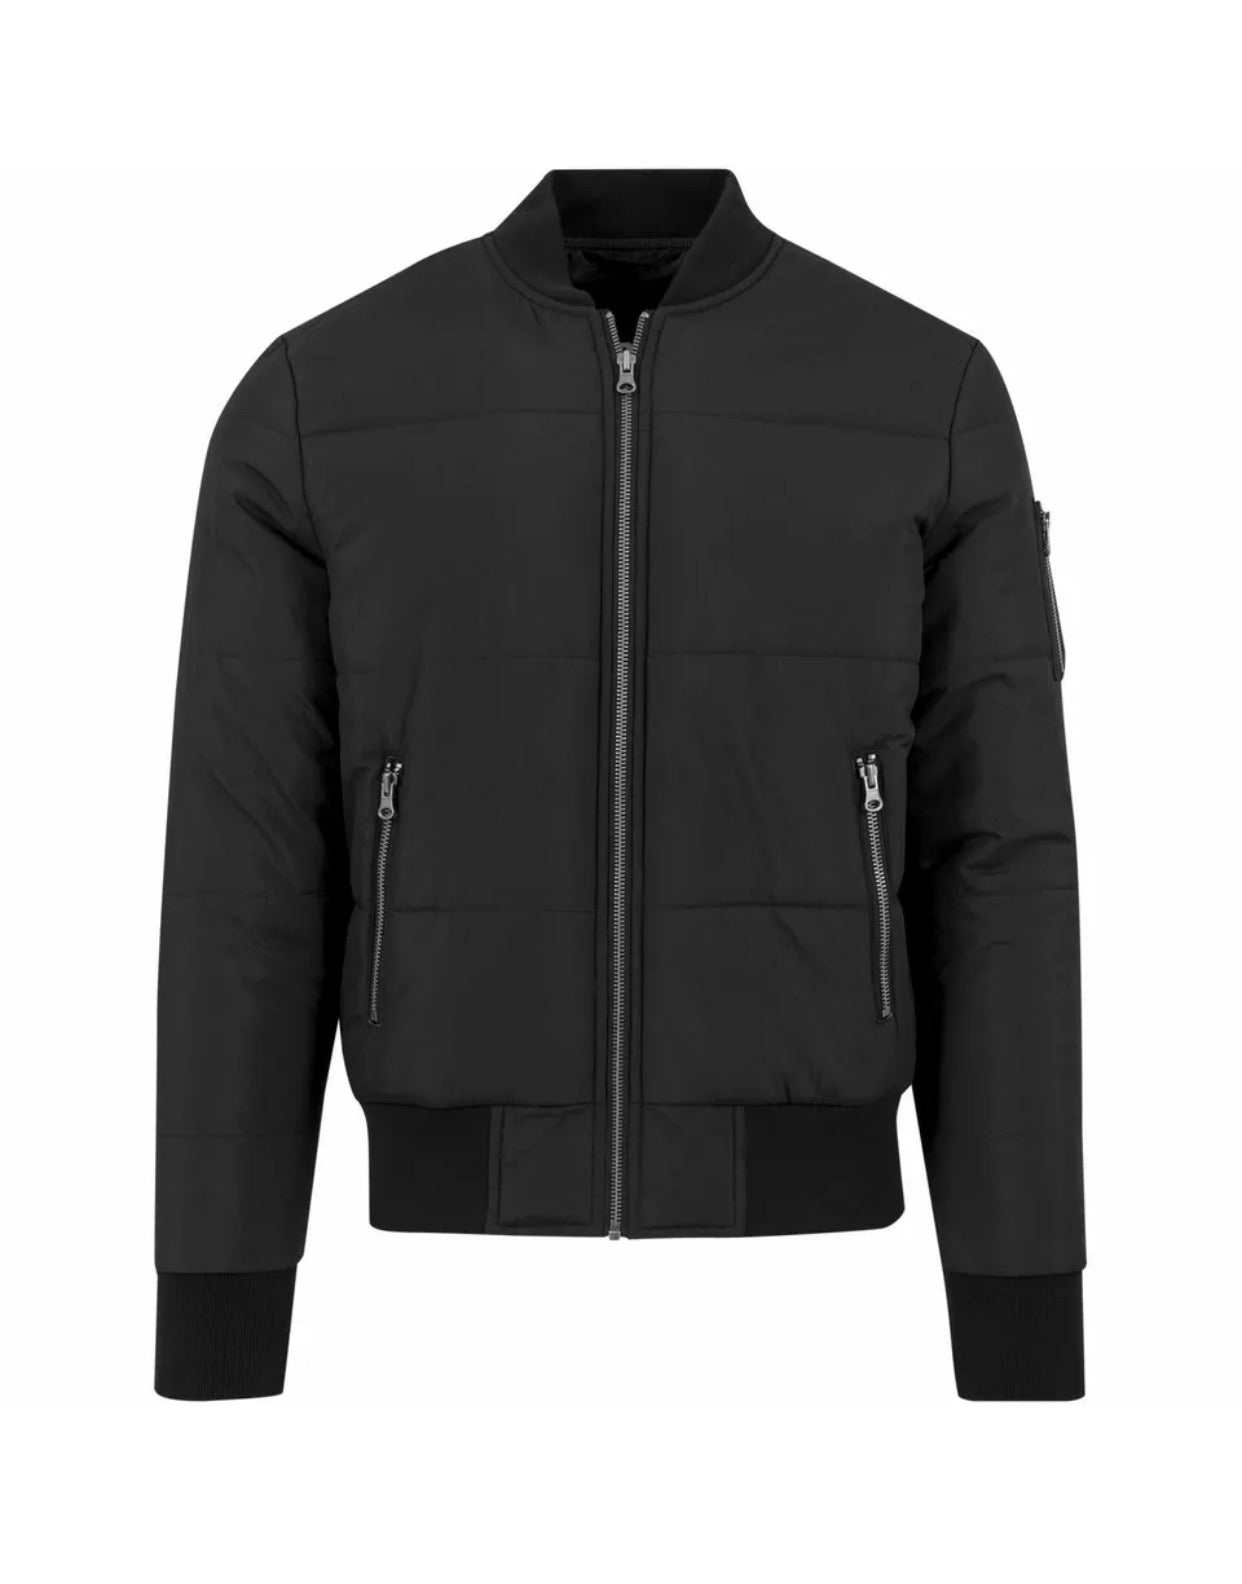 The Quilted Renegade Bomber Jacket - Limited Stock